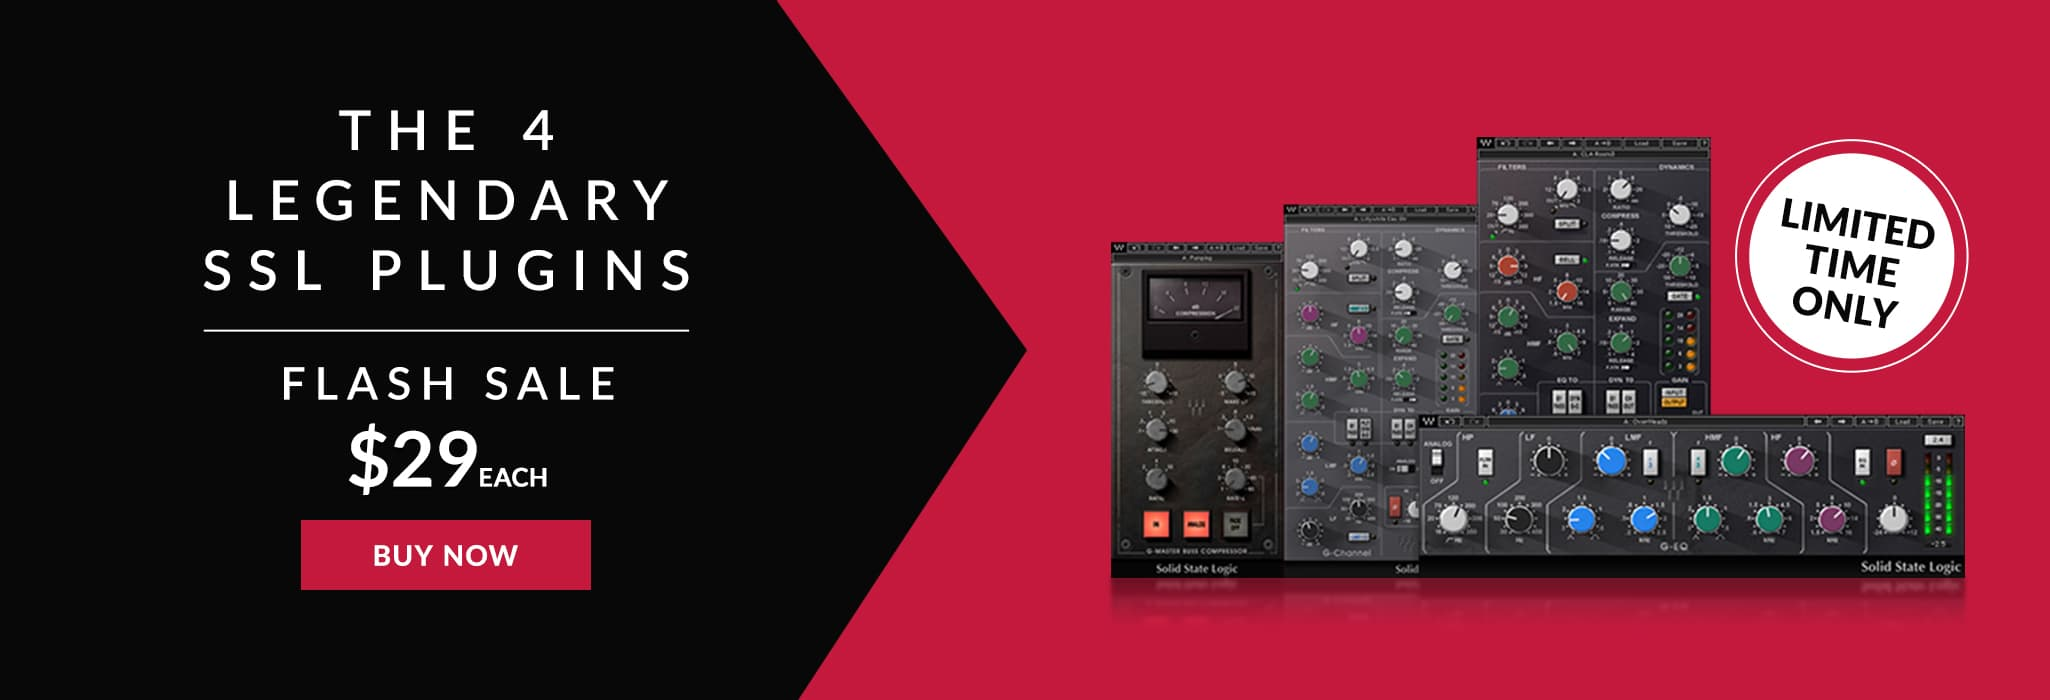 Waves: Audio Plugins for Mixing, Mastering & Recording